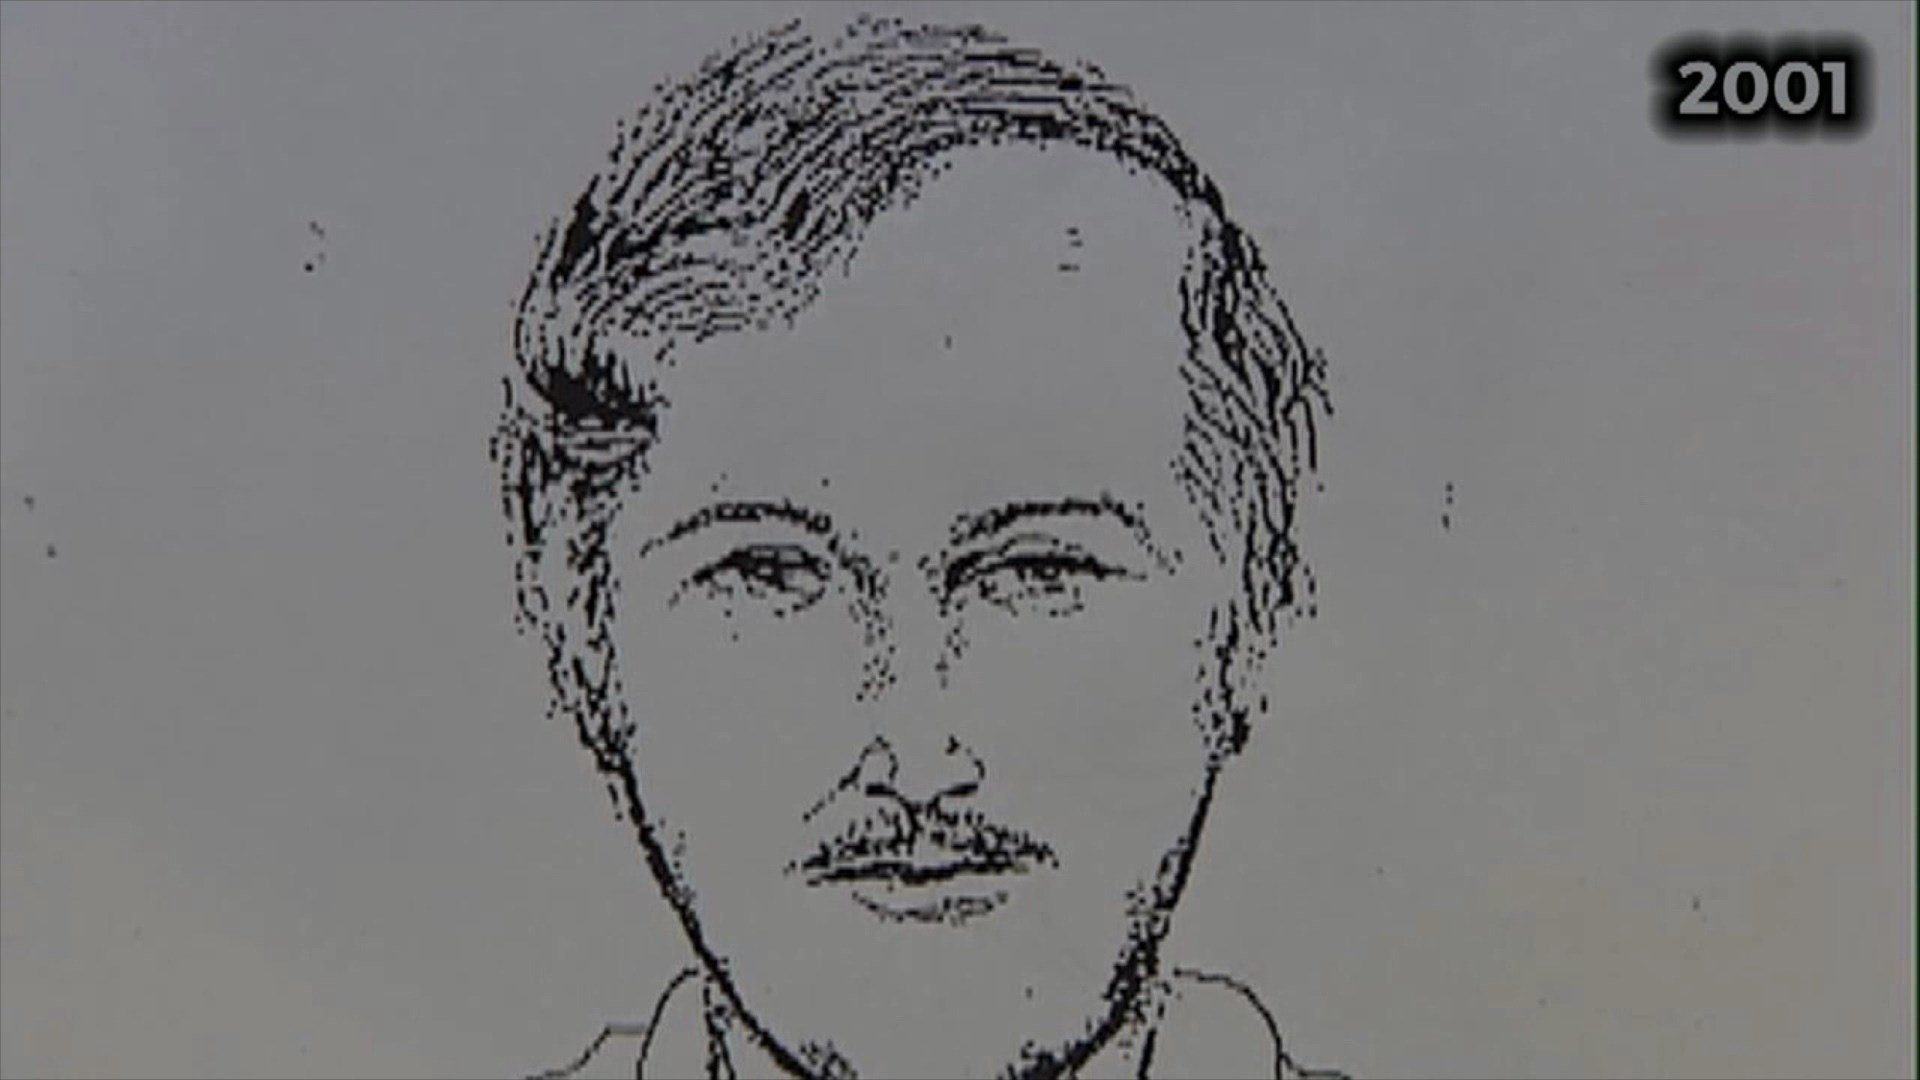 Suspect picture from 2001